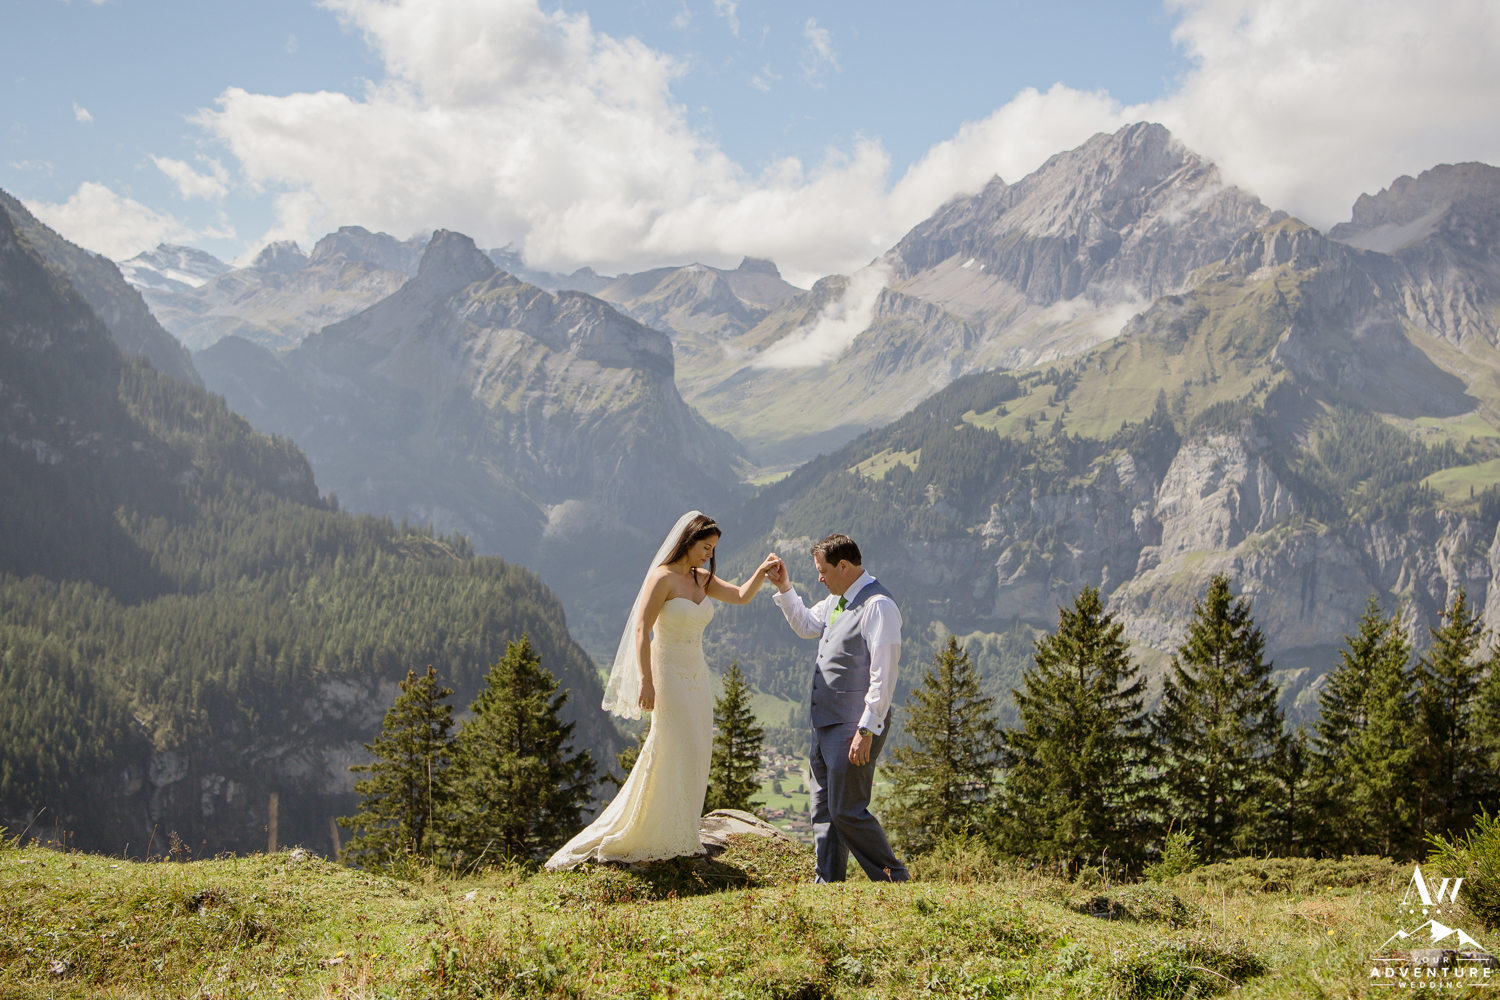 Couple exploring the Swiss Alps on wedding day